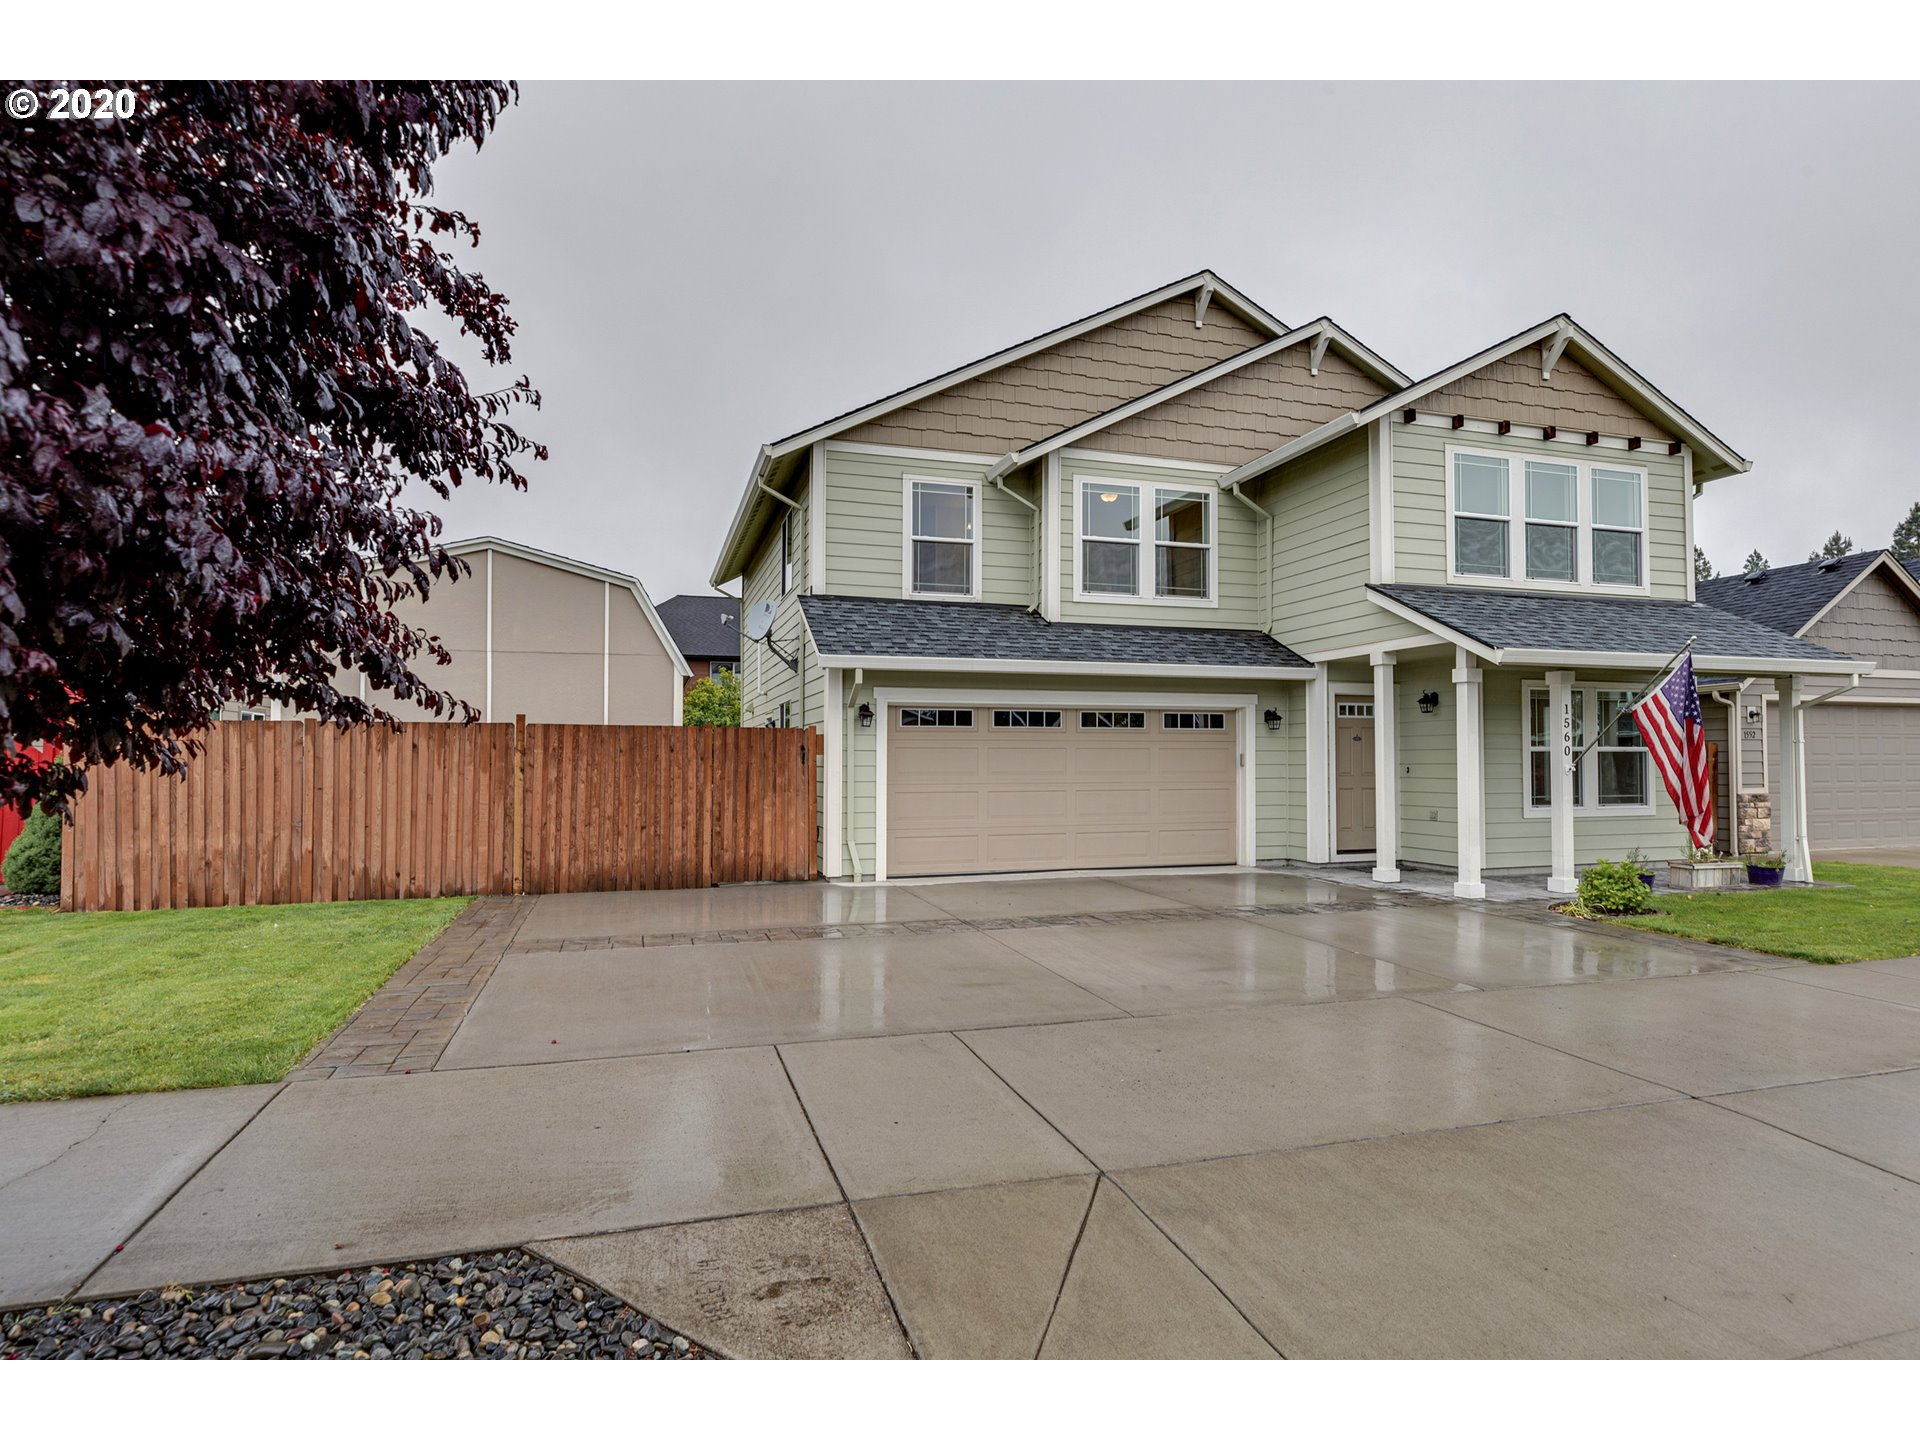 Photo of 1560 3RD ST Hood River OR 97031